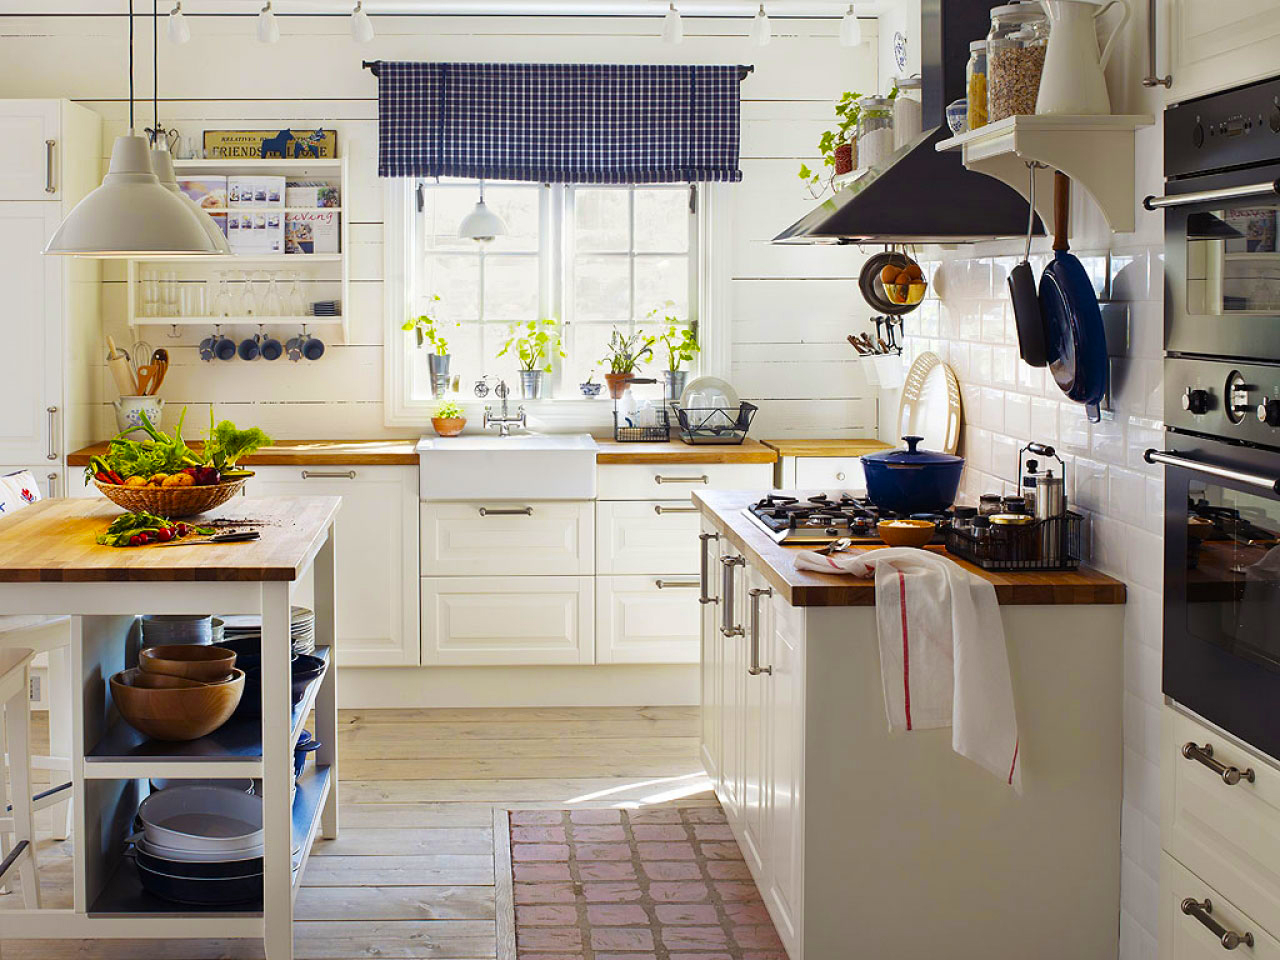 country-kitchen-designs-ideas-for-trendy-country-style-kitchen-cabinets-in-white-wooden-kitchen-cabinet-designs-in-small-country-kitchen-designs-remodeling-ideas